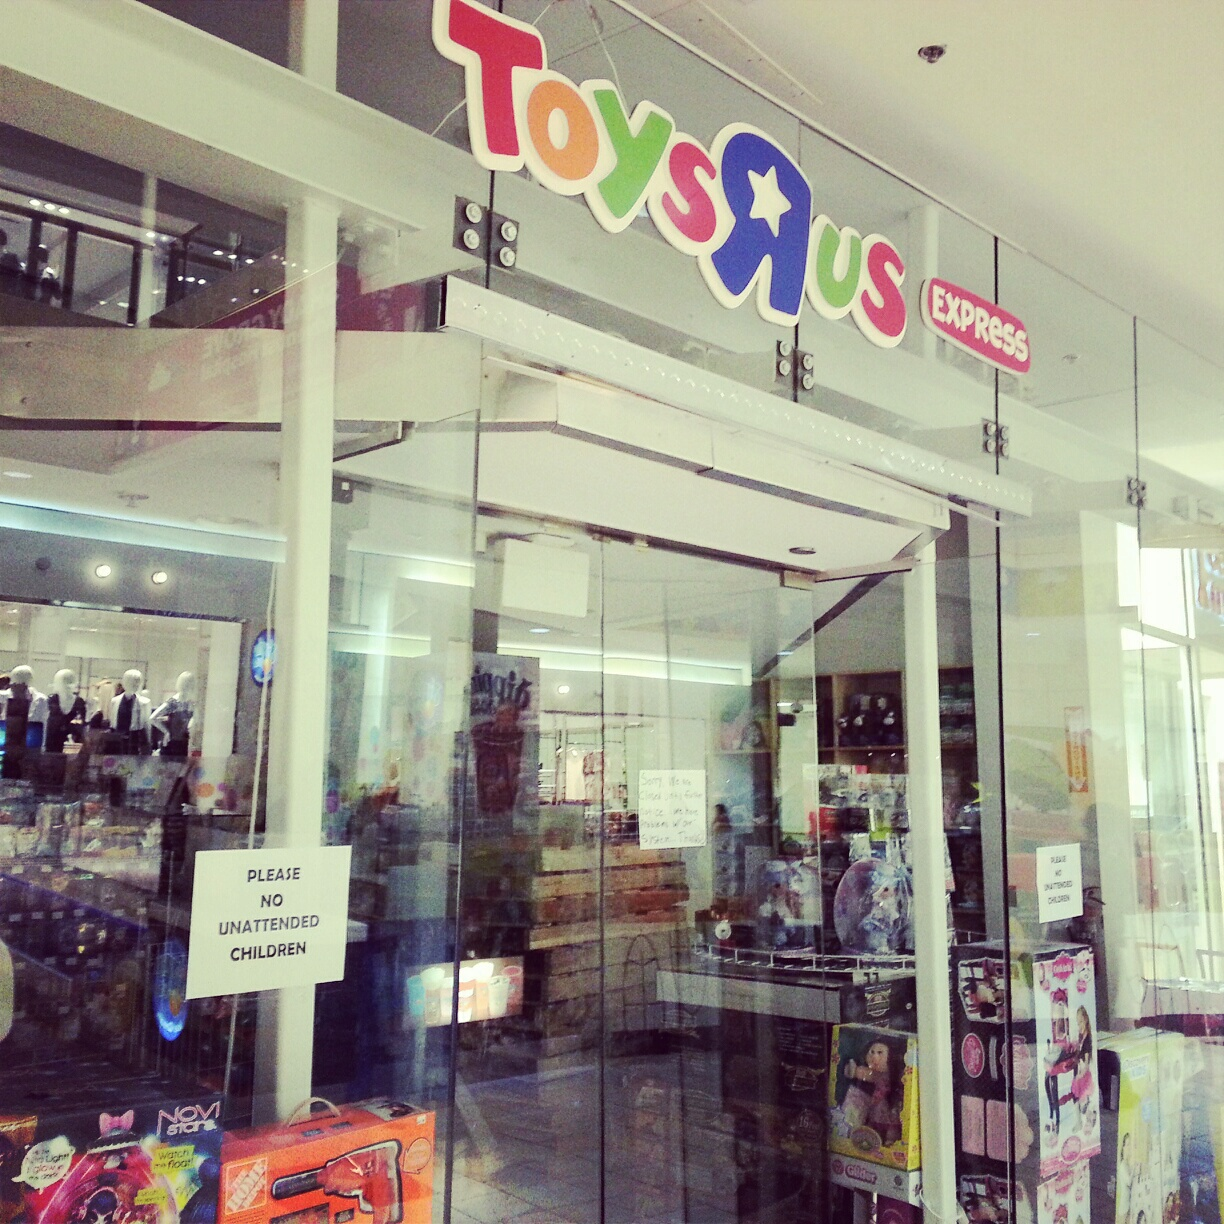 Toys R Us Mall : Robert dyer bethesda row toys r us express opens in